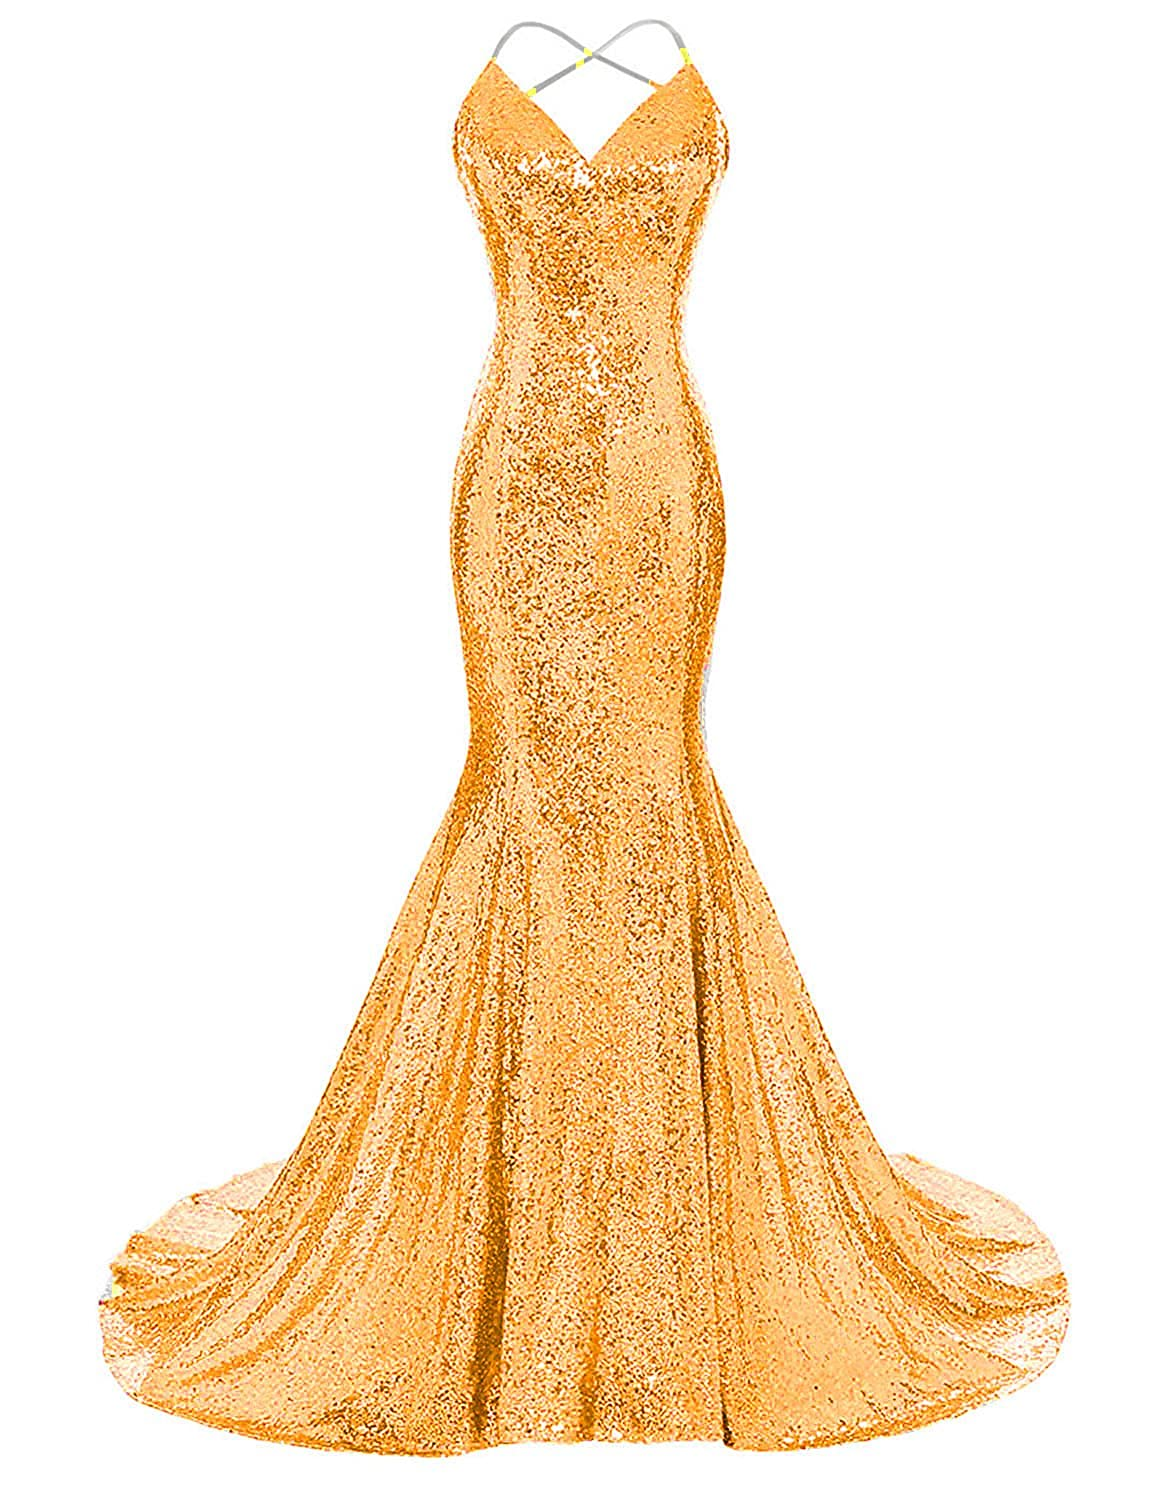 Bright gold Monalia Women's 2018 Formal Evening Dresses Sequined Mermaid Prom Gowns EV4